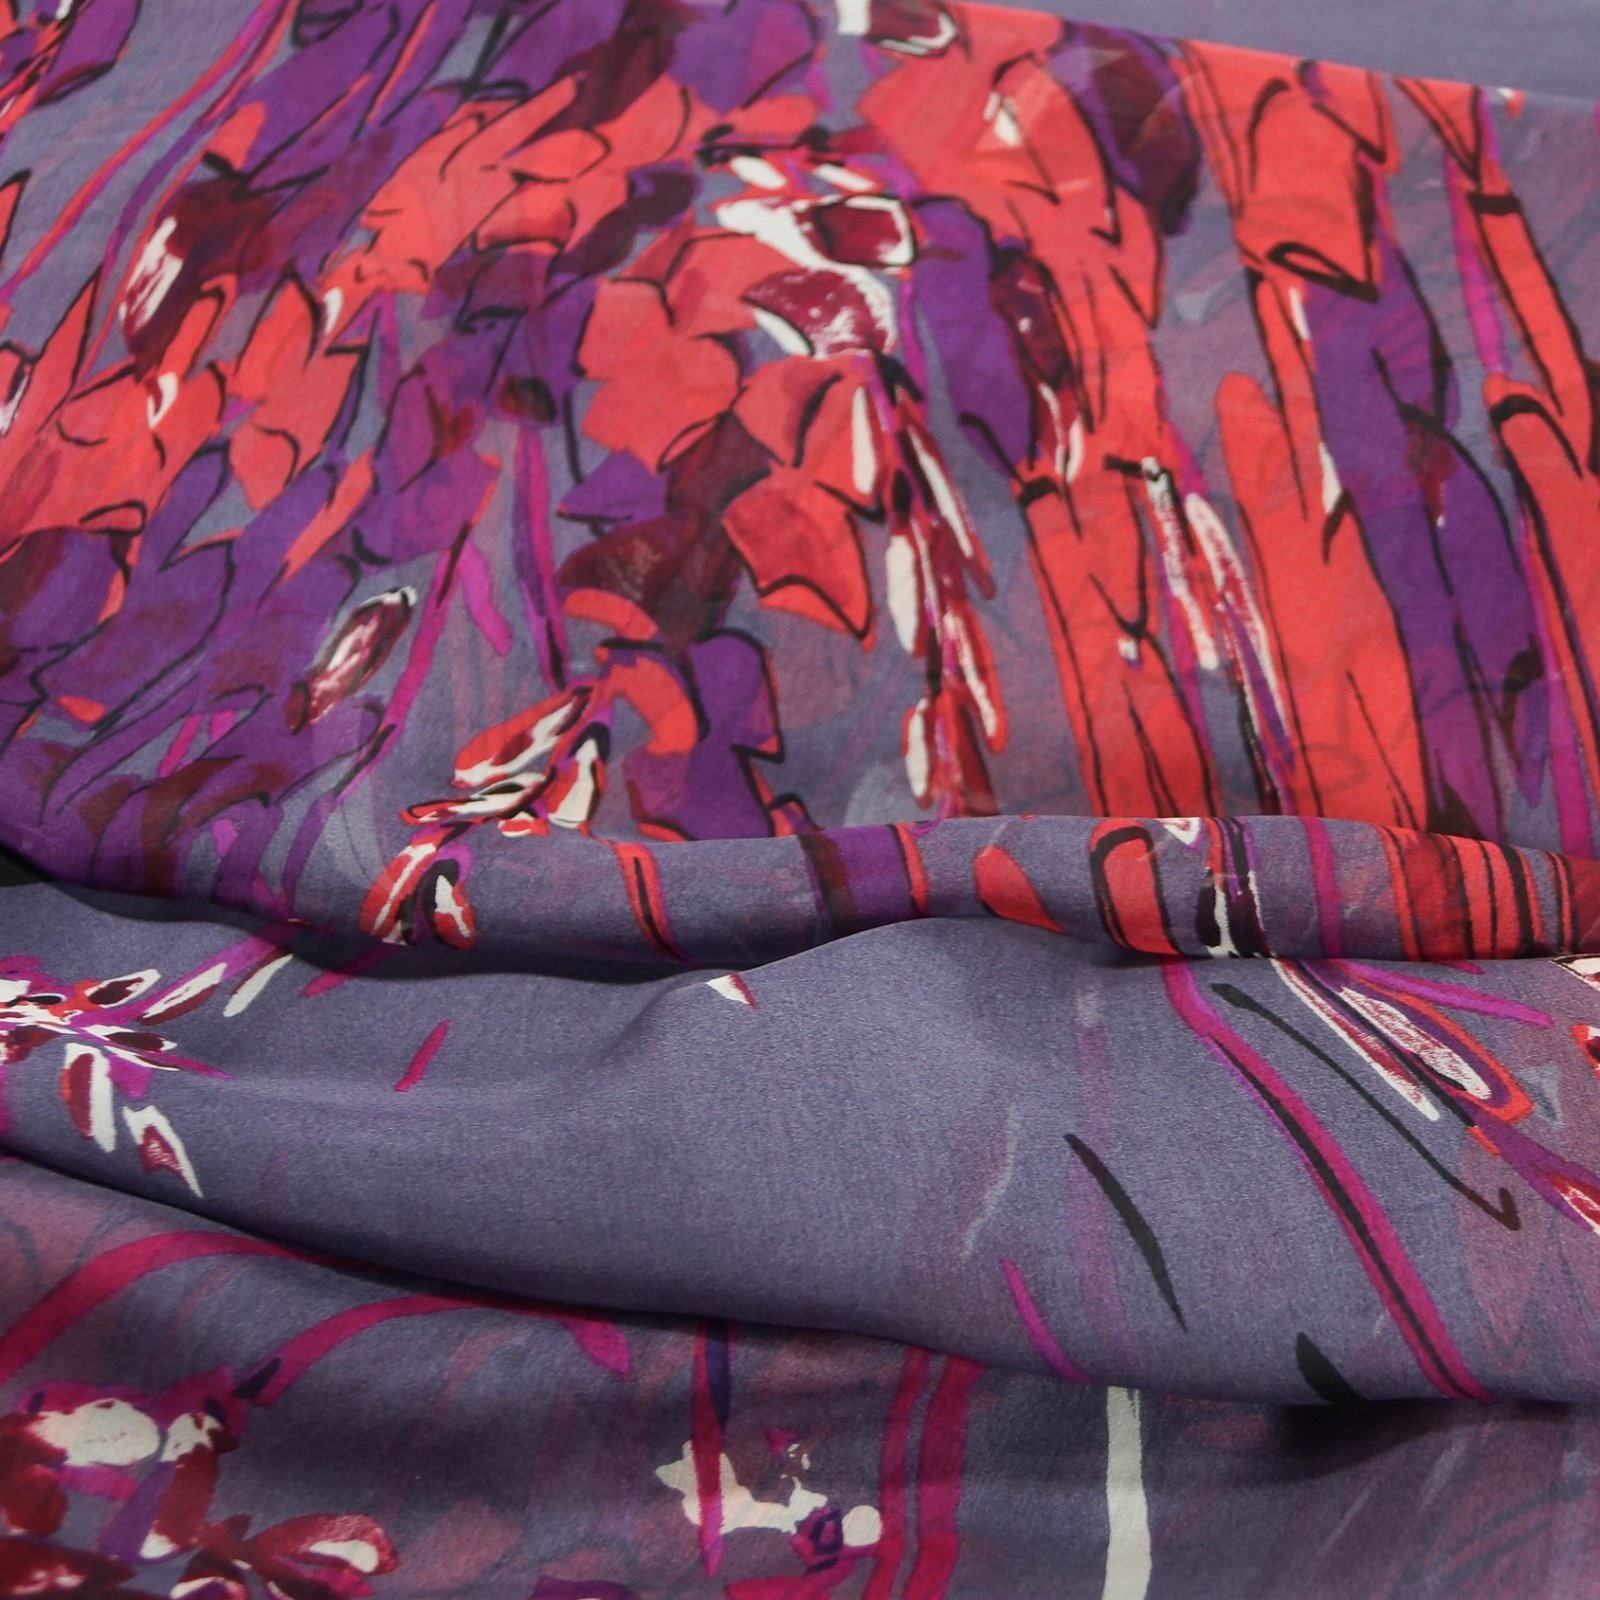 Silk - Abstract Art in Coral, Wine, & Magenta on Lavender Italian Silk Georgette